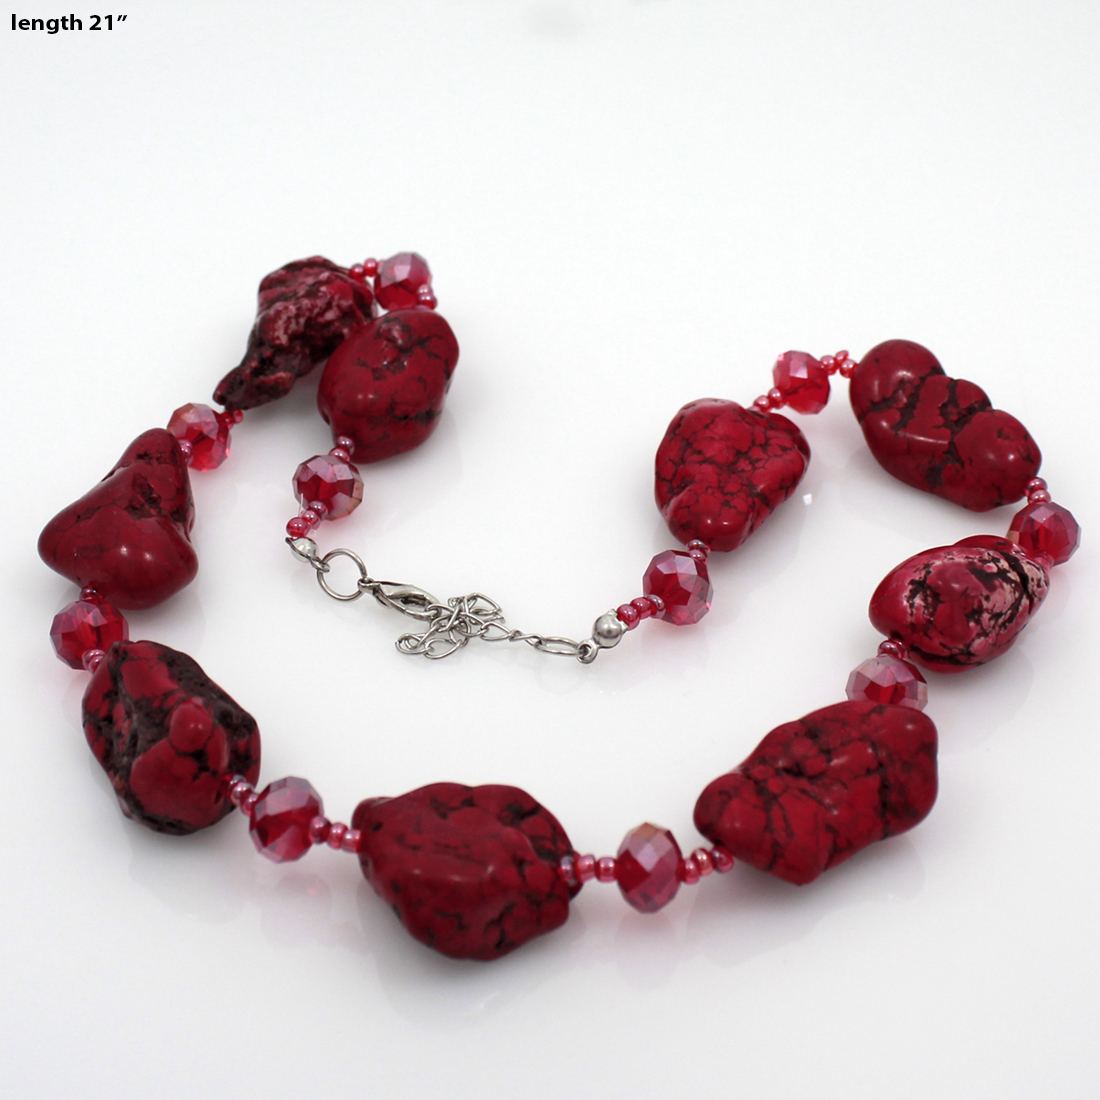 NKL01-RED - NKL01-RED WHOLESALE GENUINE CRYSTAL AND GLASS NECKLACE SET